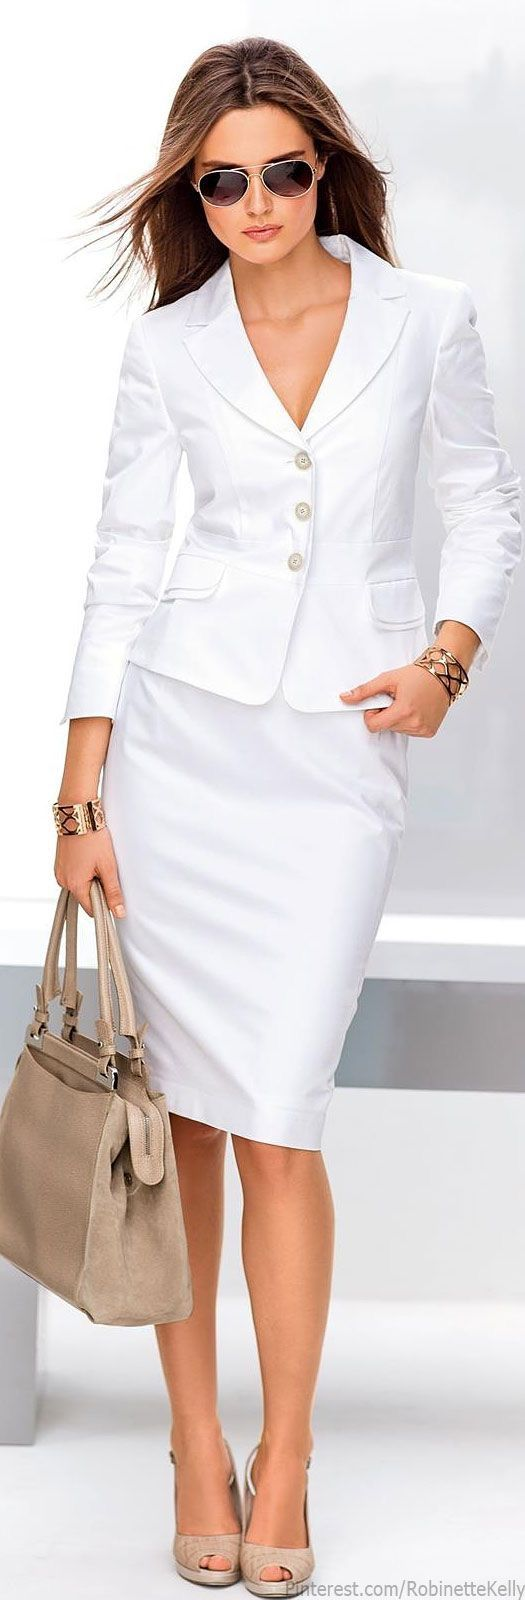 Perfect white suit and beige accessories.